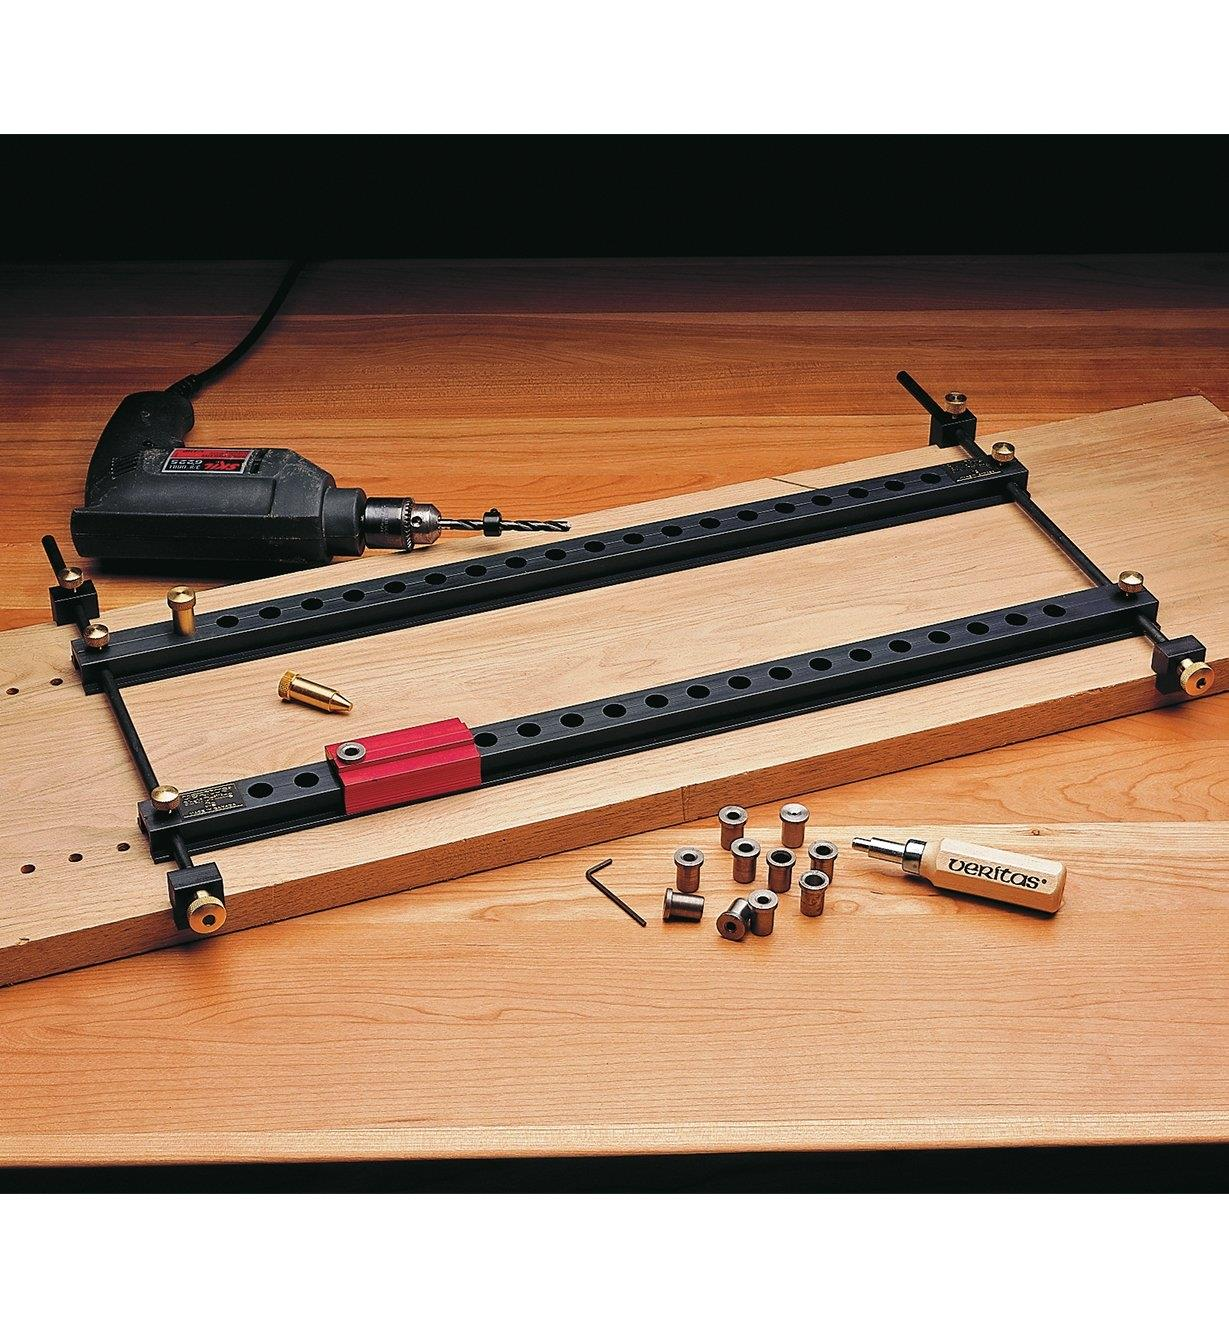 05J0303 - Shelf-Drilling Jig